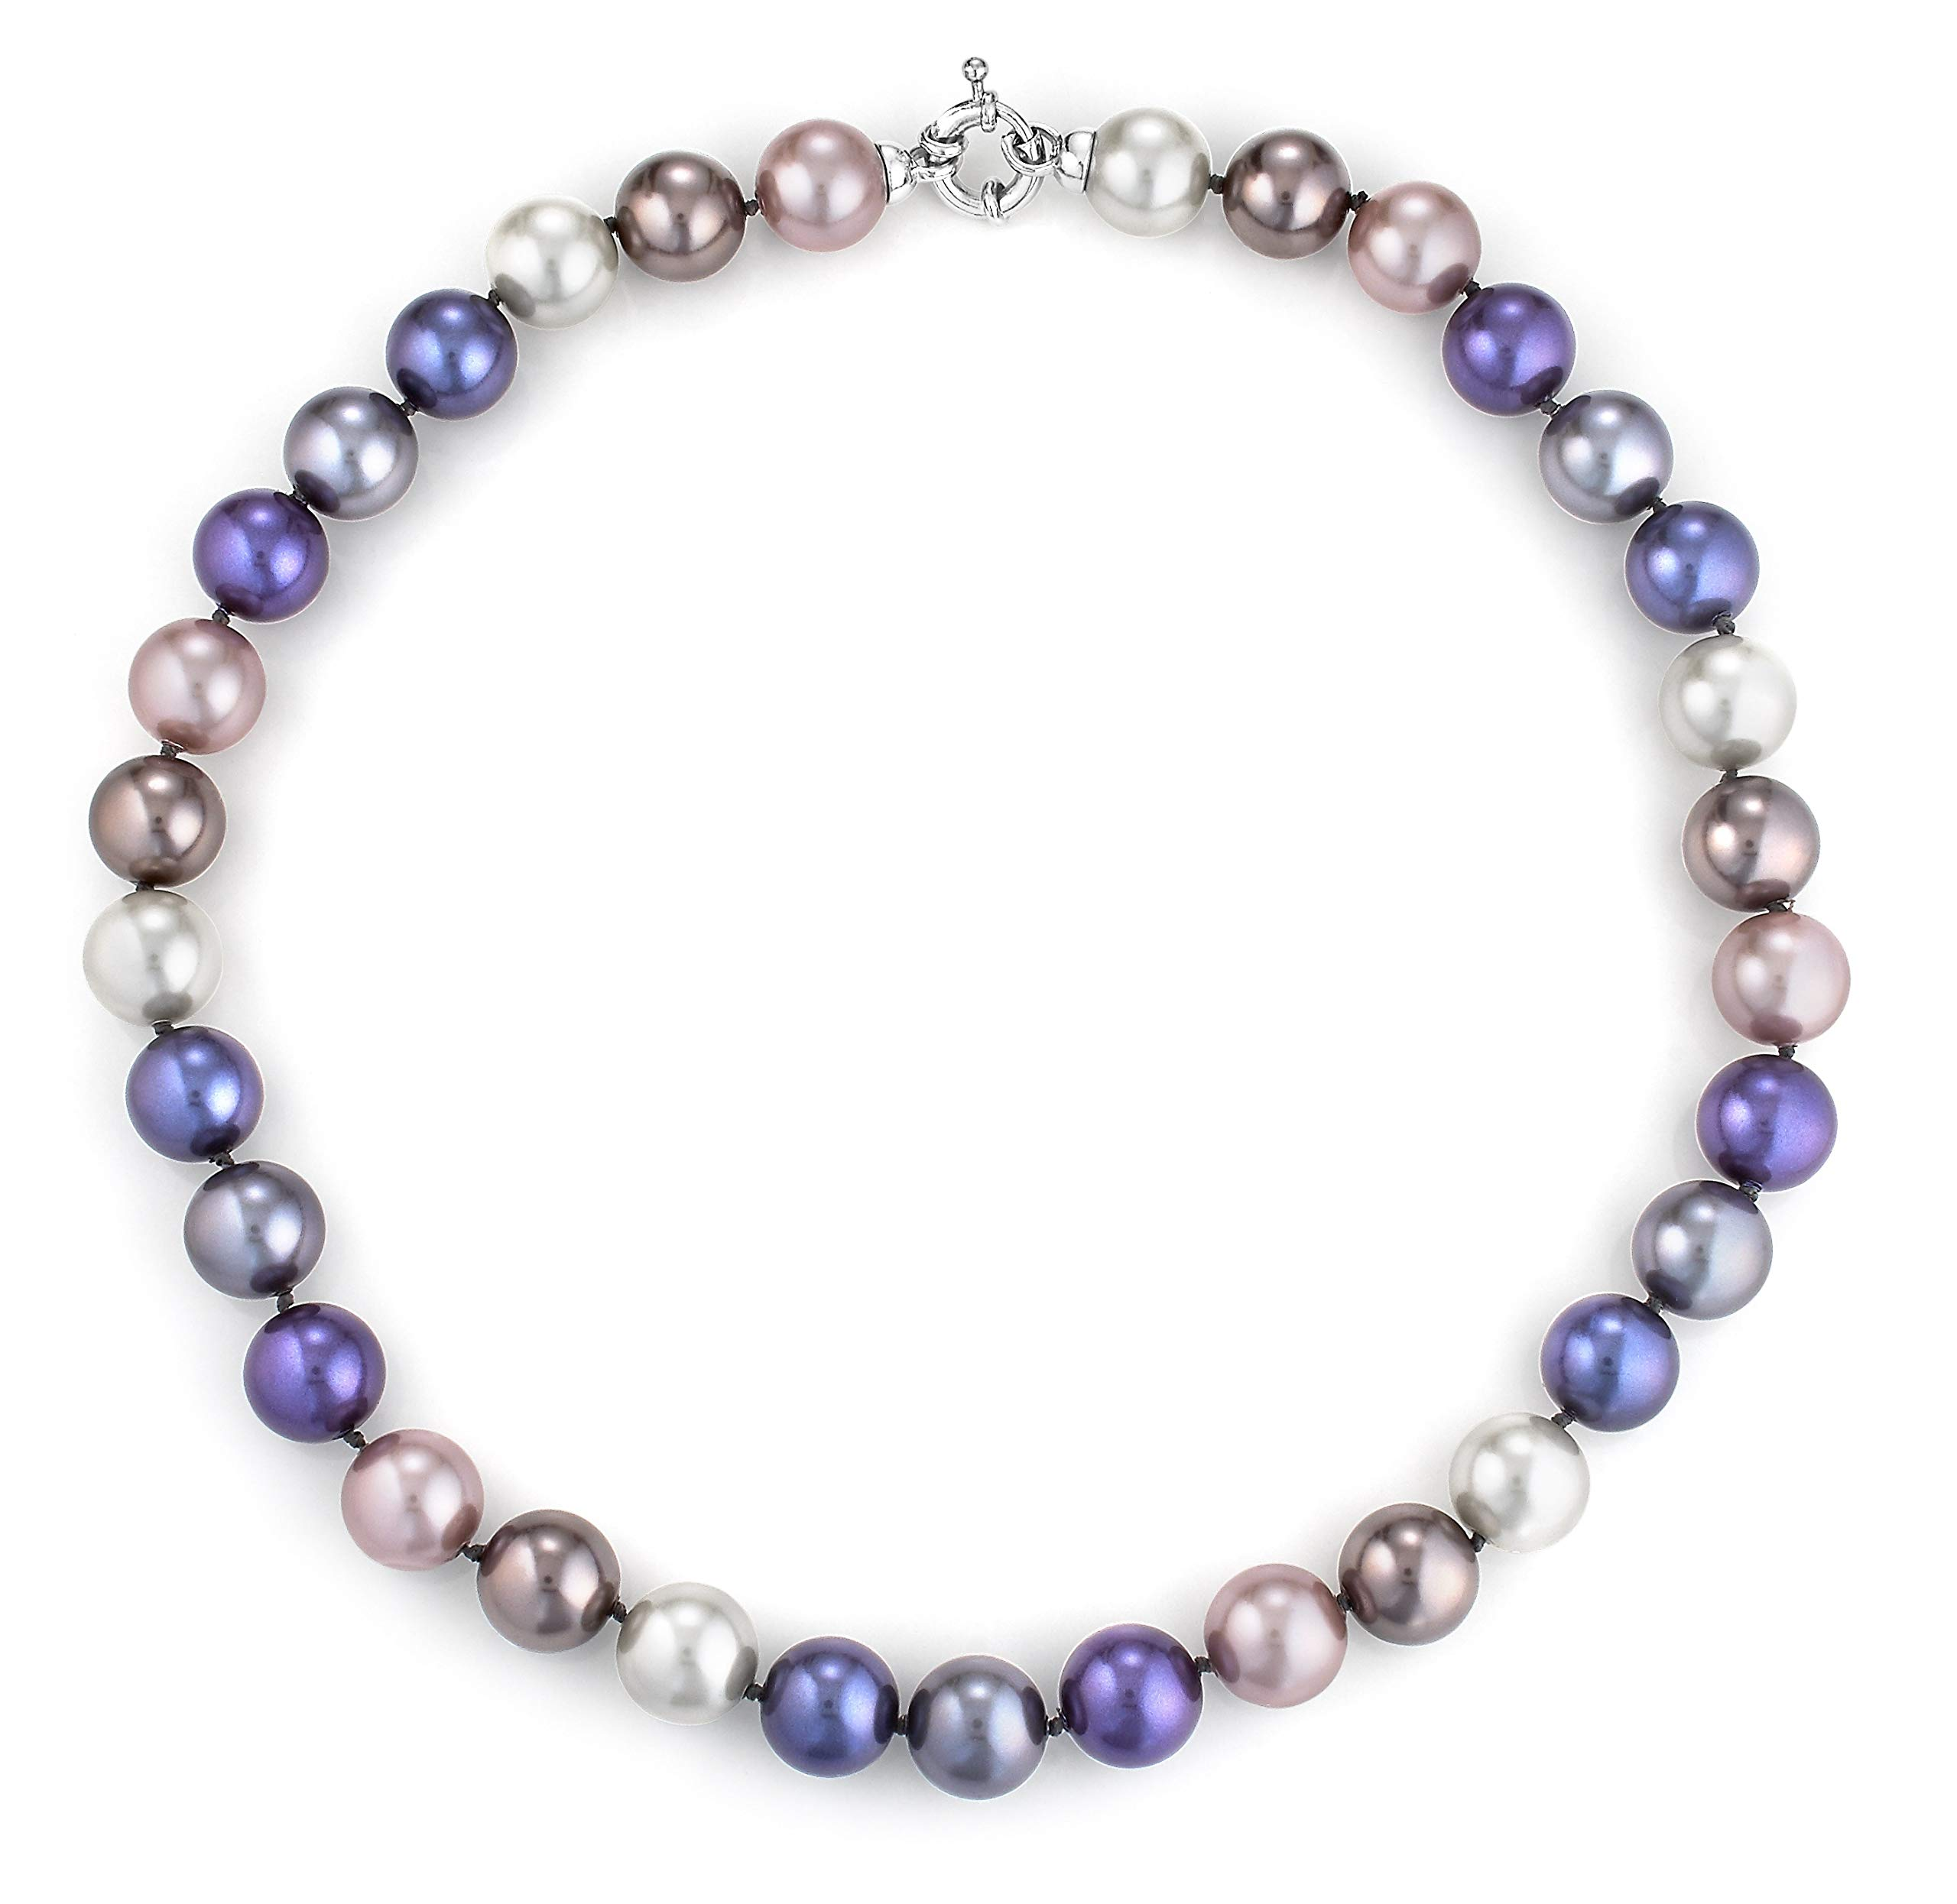 Joia De Majorca, 12mm, 18 inch Multi-Hues Pearl Necklace with Rhodium Euro Clasp, Purples, Pinks, Champagne, Lustrous, Man-Made Organic Strand of Pearls from Majorca Spain by JOIA DE MAJORCA